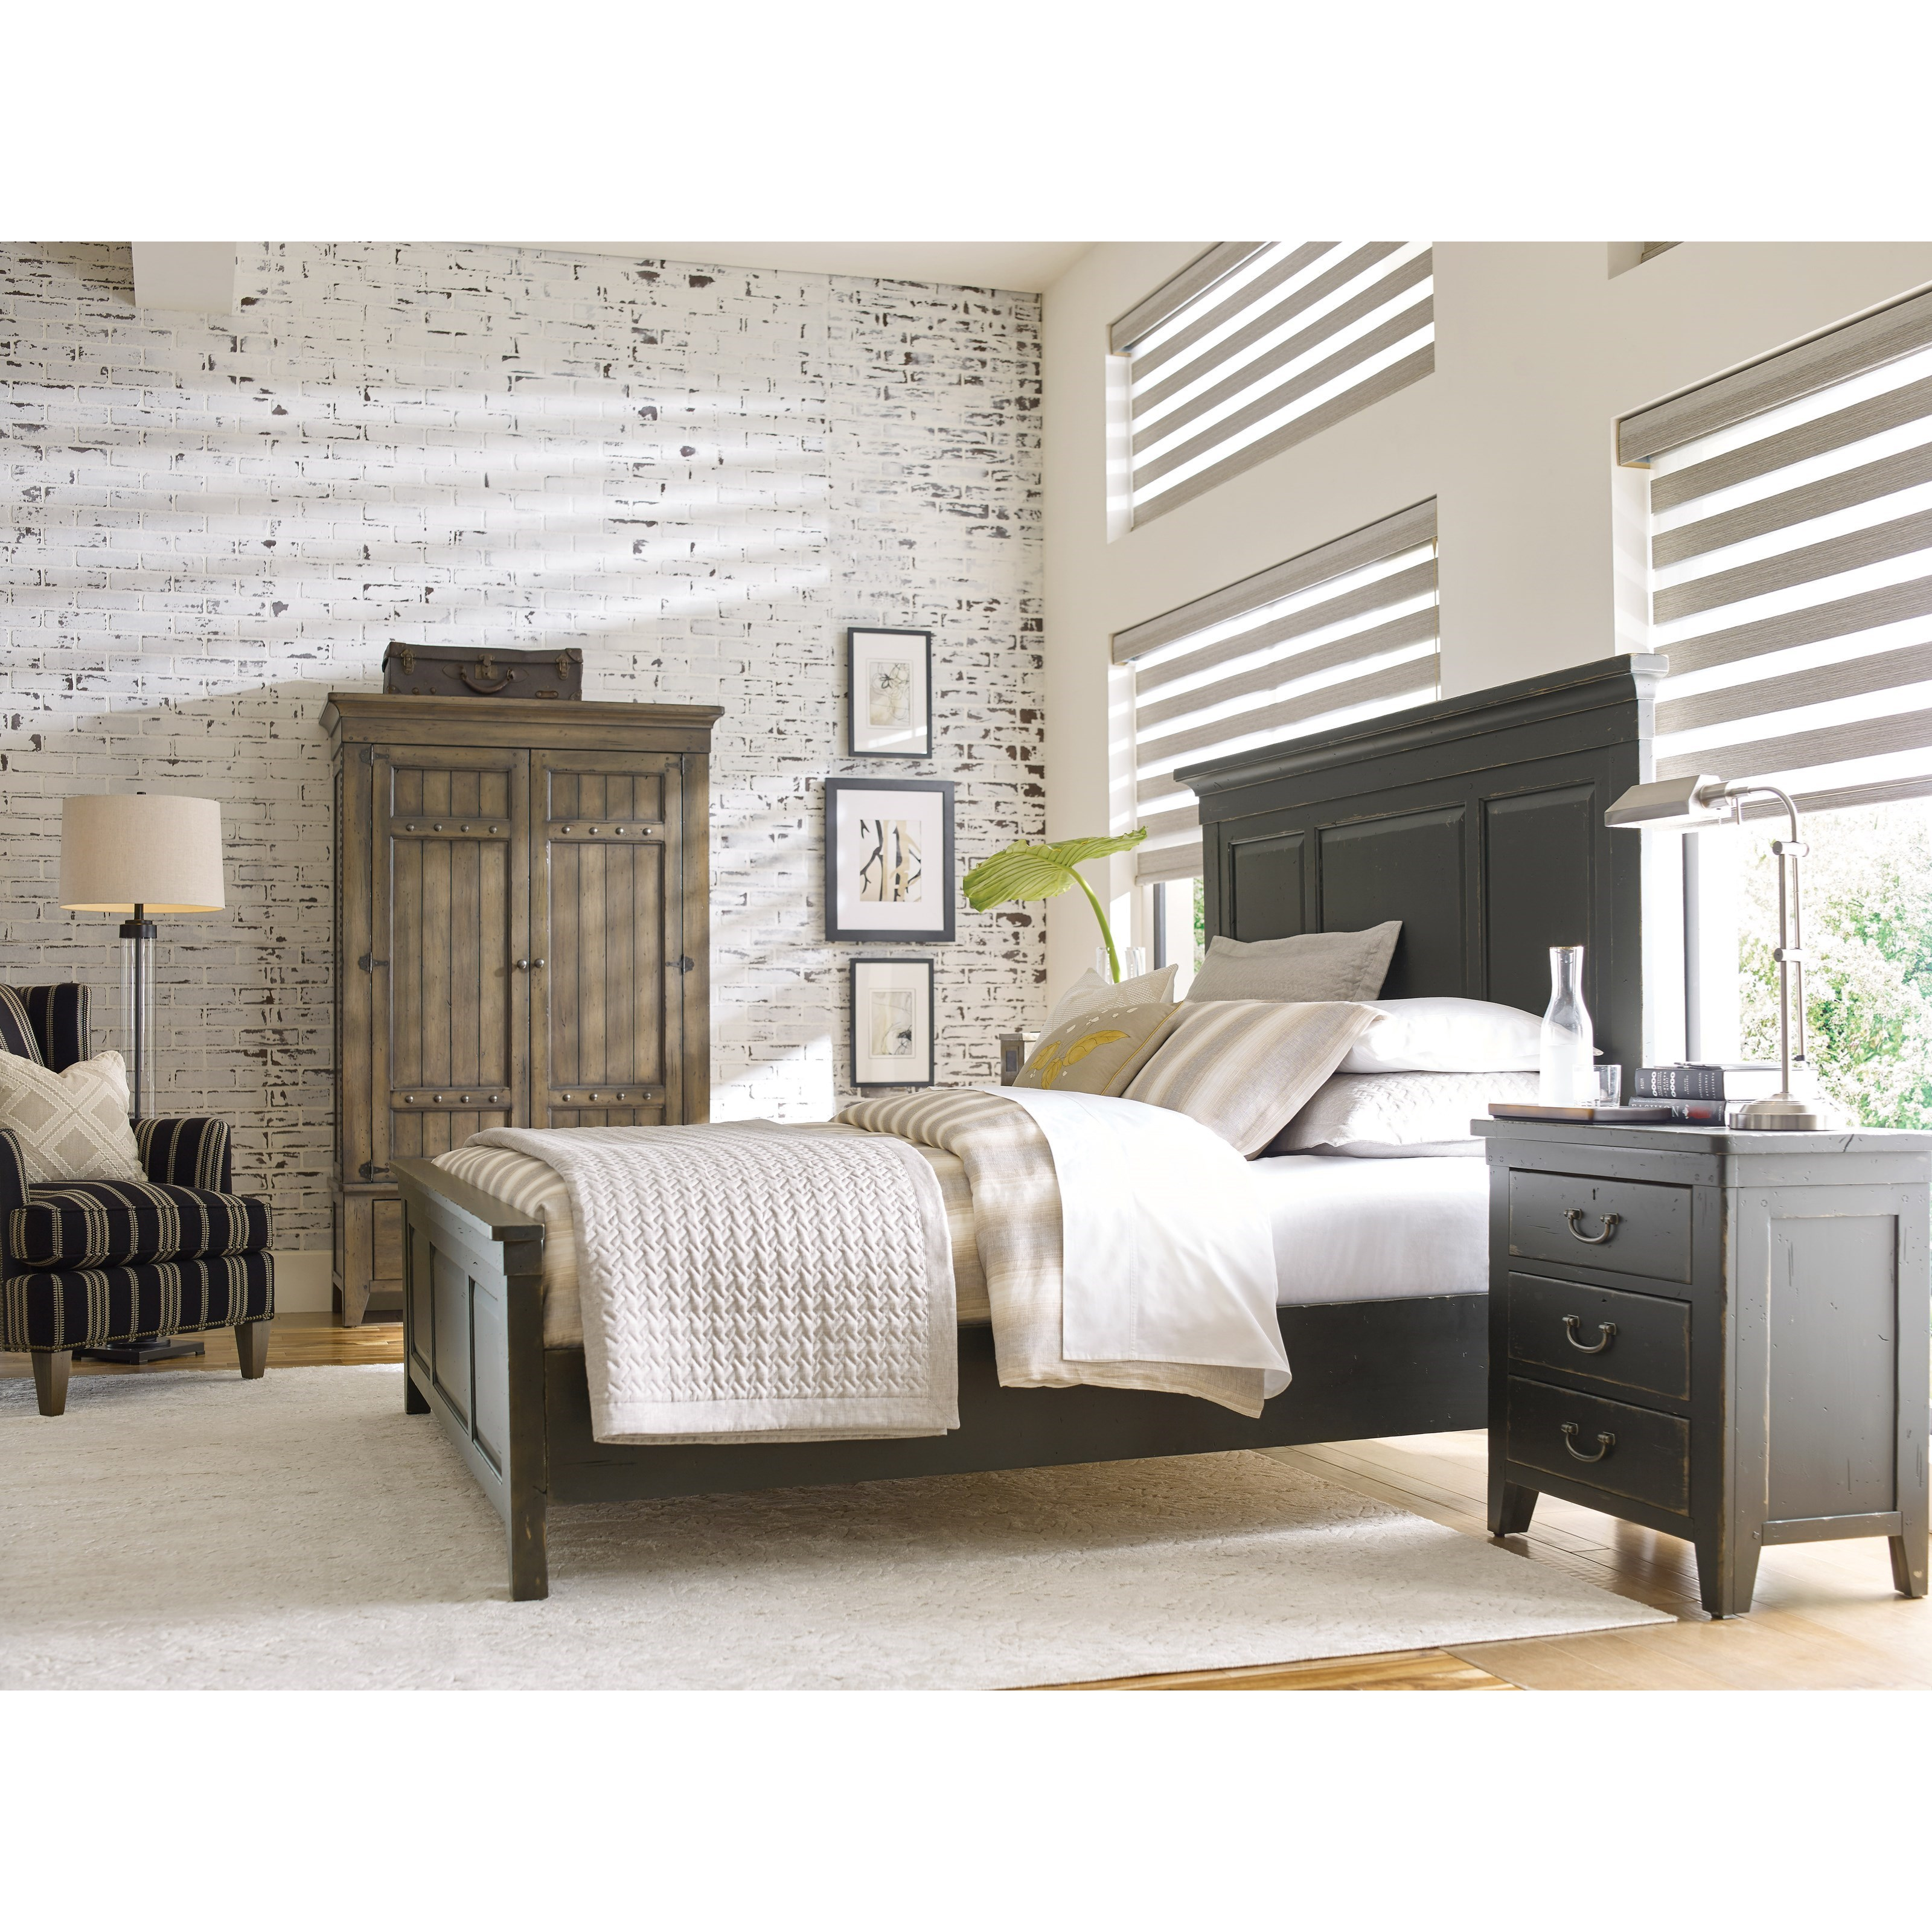 Mill House California King Bedroom Group by Kincaid Furniture at Northeast Factory Direct